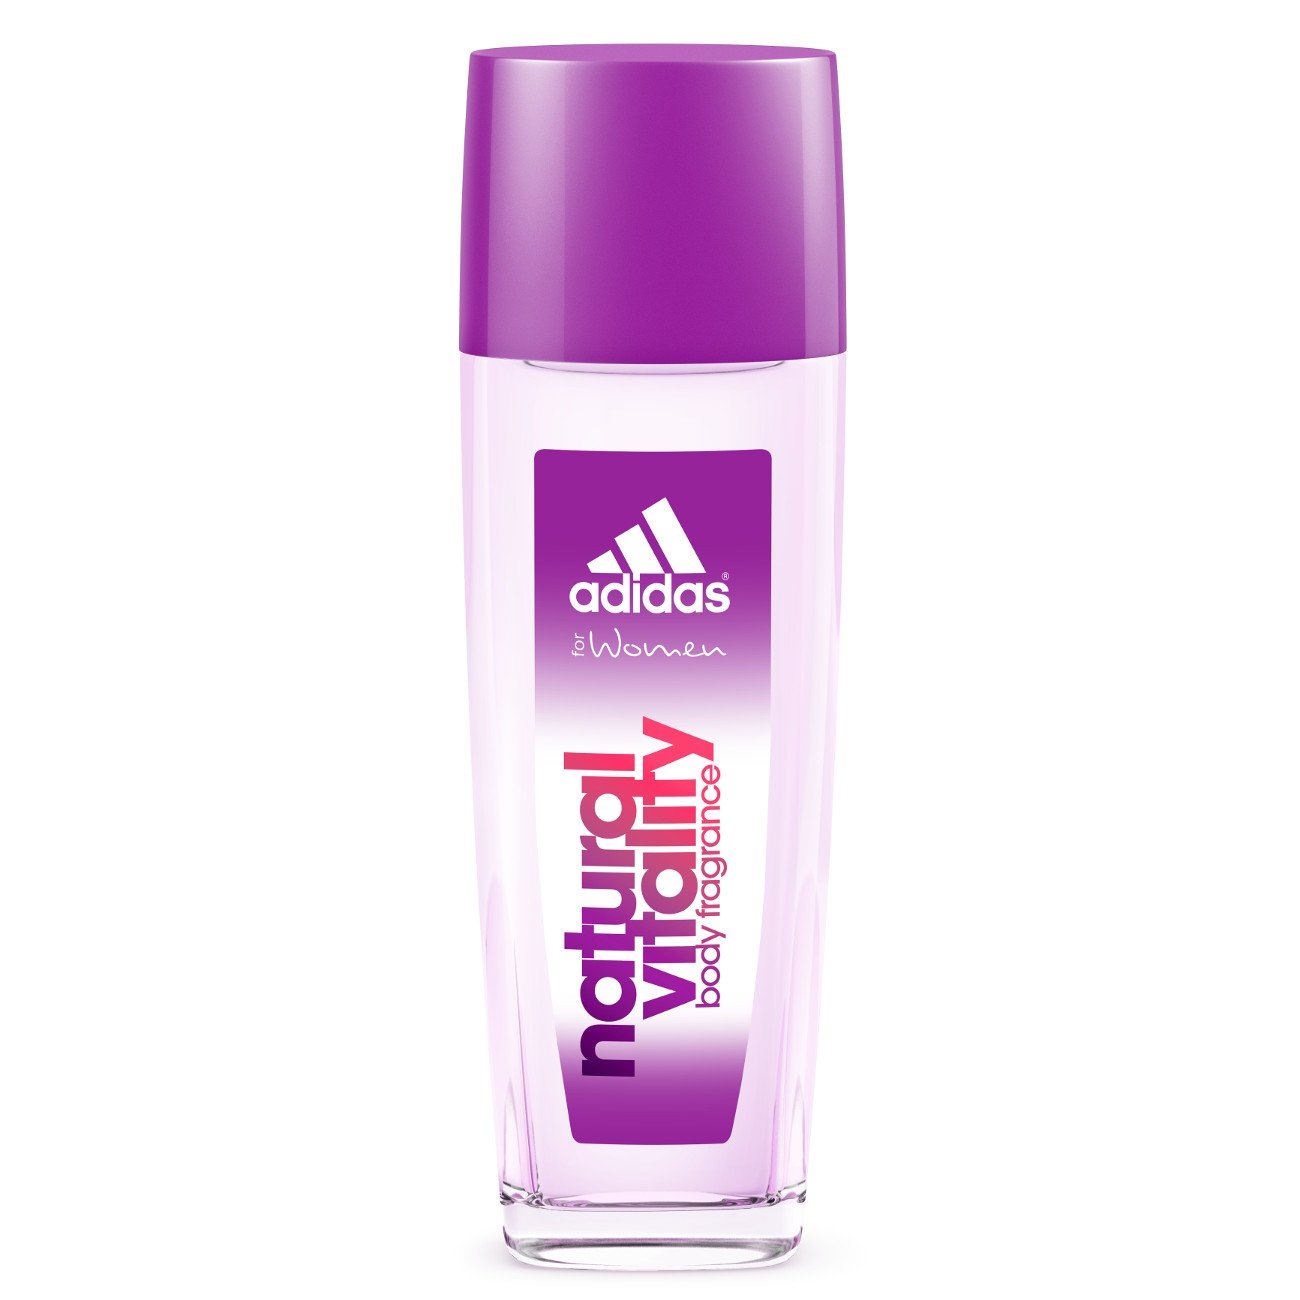 Adidas Fragrance Body Fragrance, Natural Vitality, 2.5 Fluid Ounce